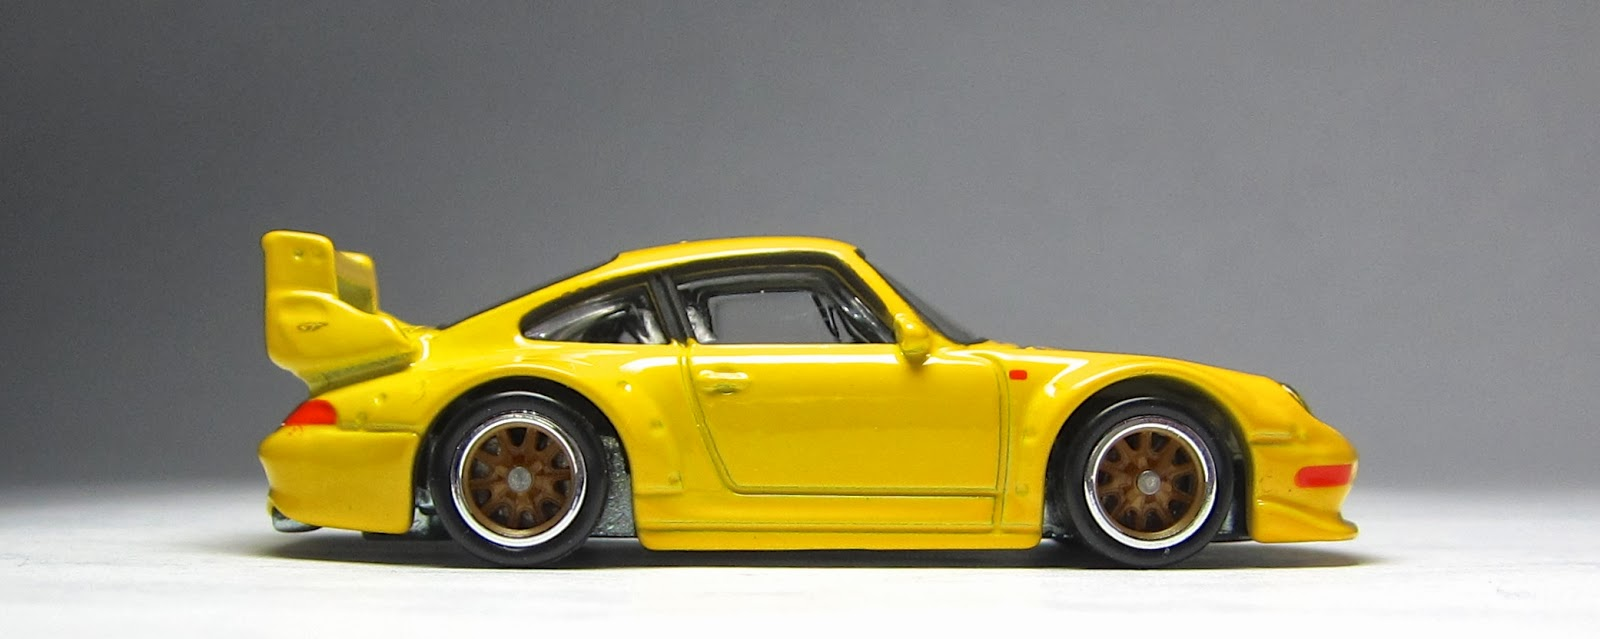 first look 2014 hot wheels porsche 993 gt2 the lamley group. Black Bedroom Furniture Sets. Home Design Ideas